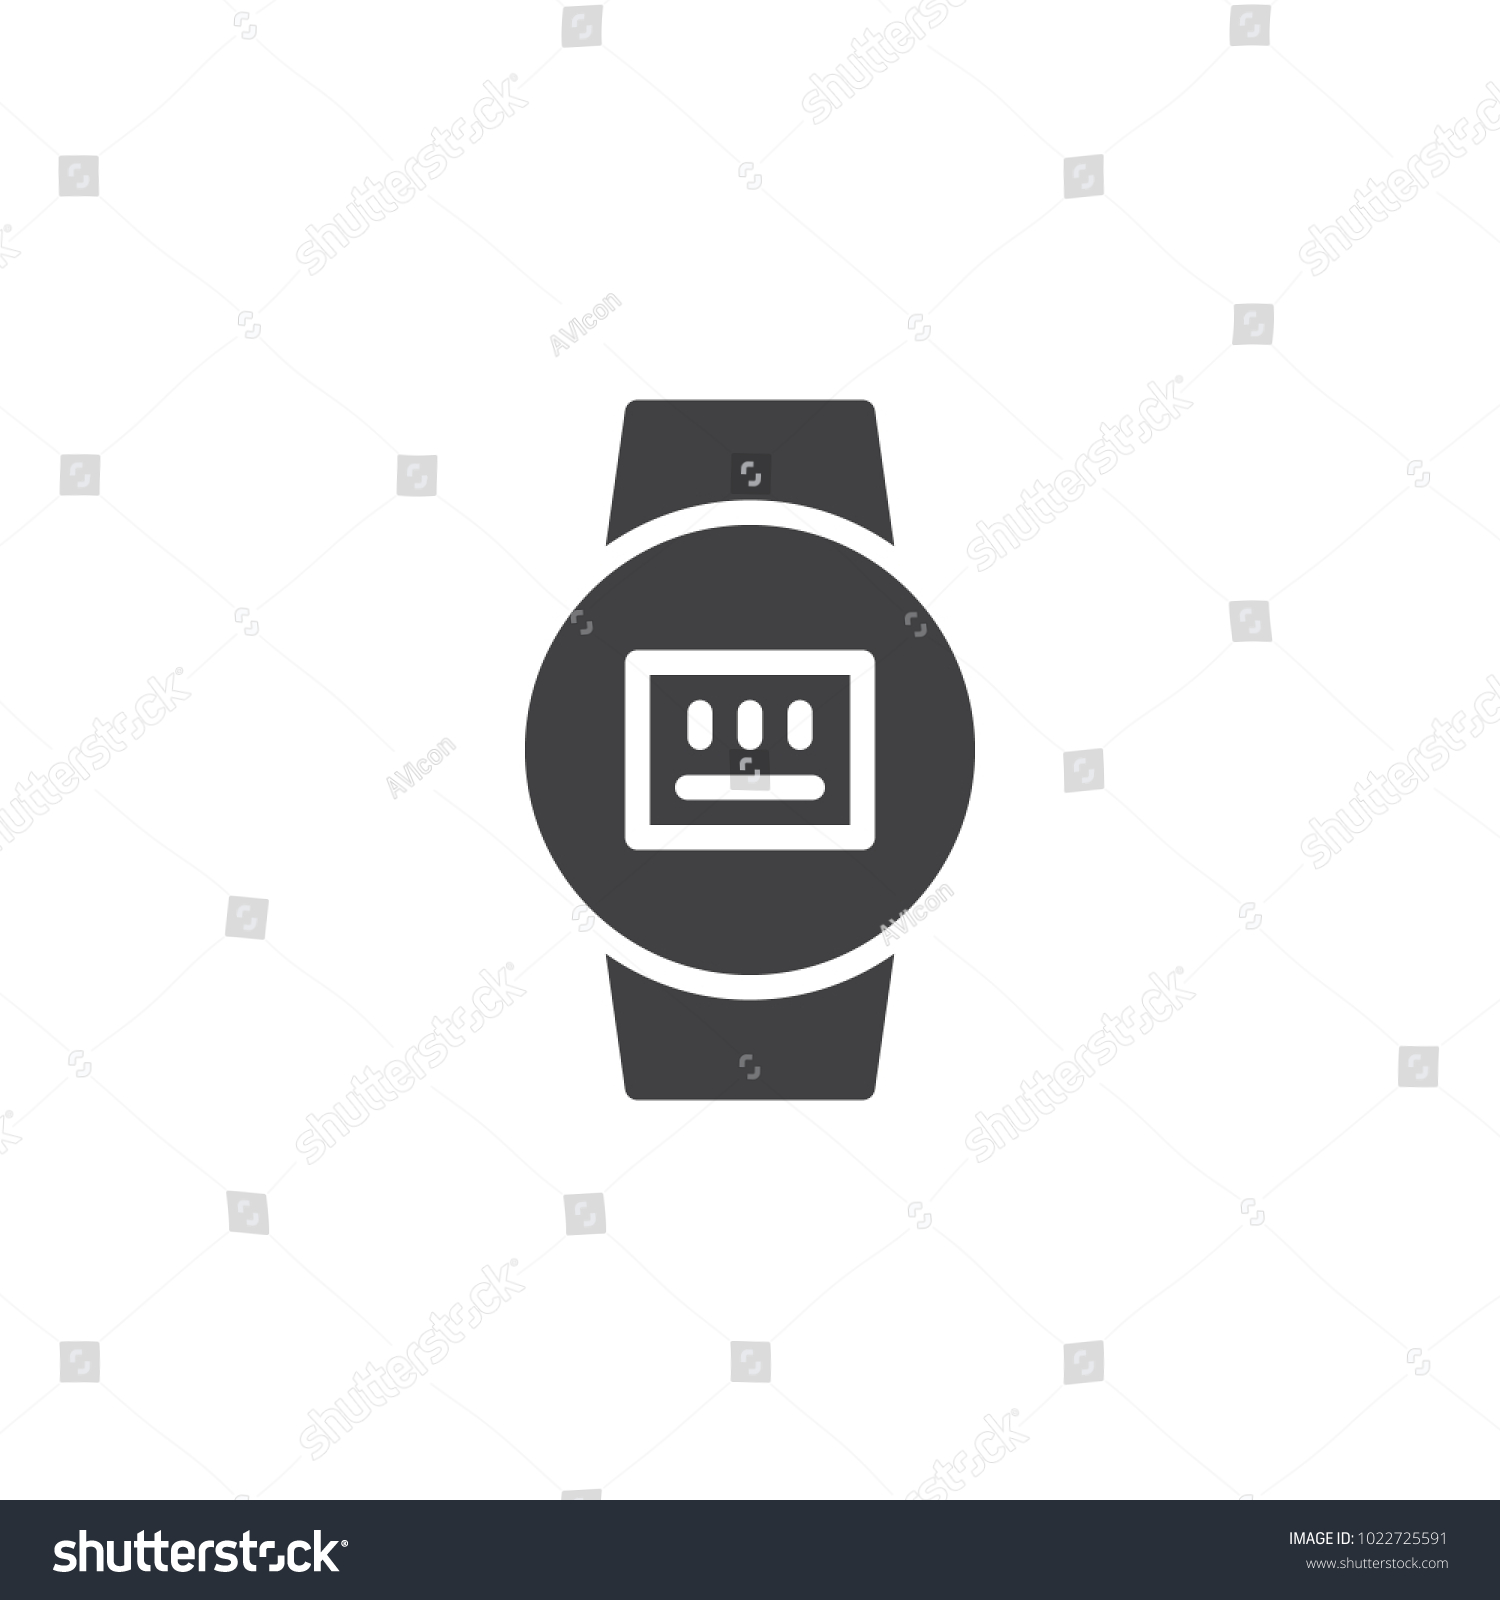 Electric Meter Icon Vector Filled Flat Stock Vector HD (Royalty Free ...